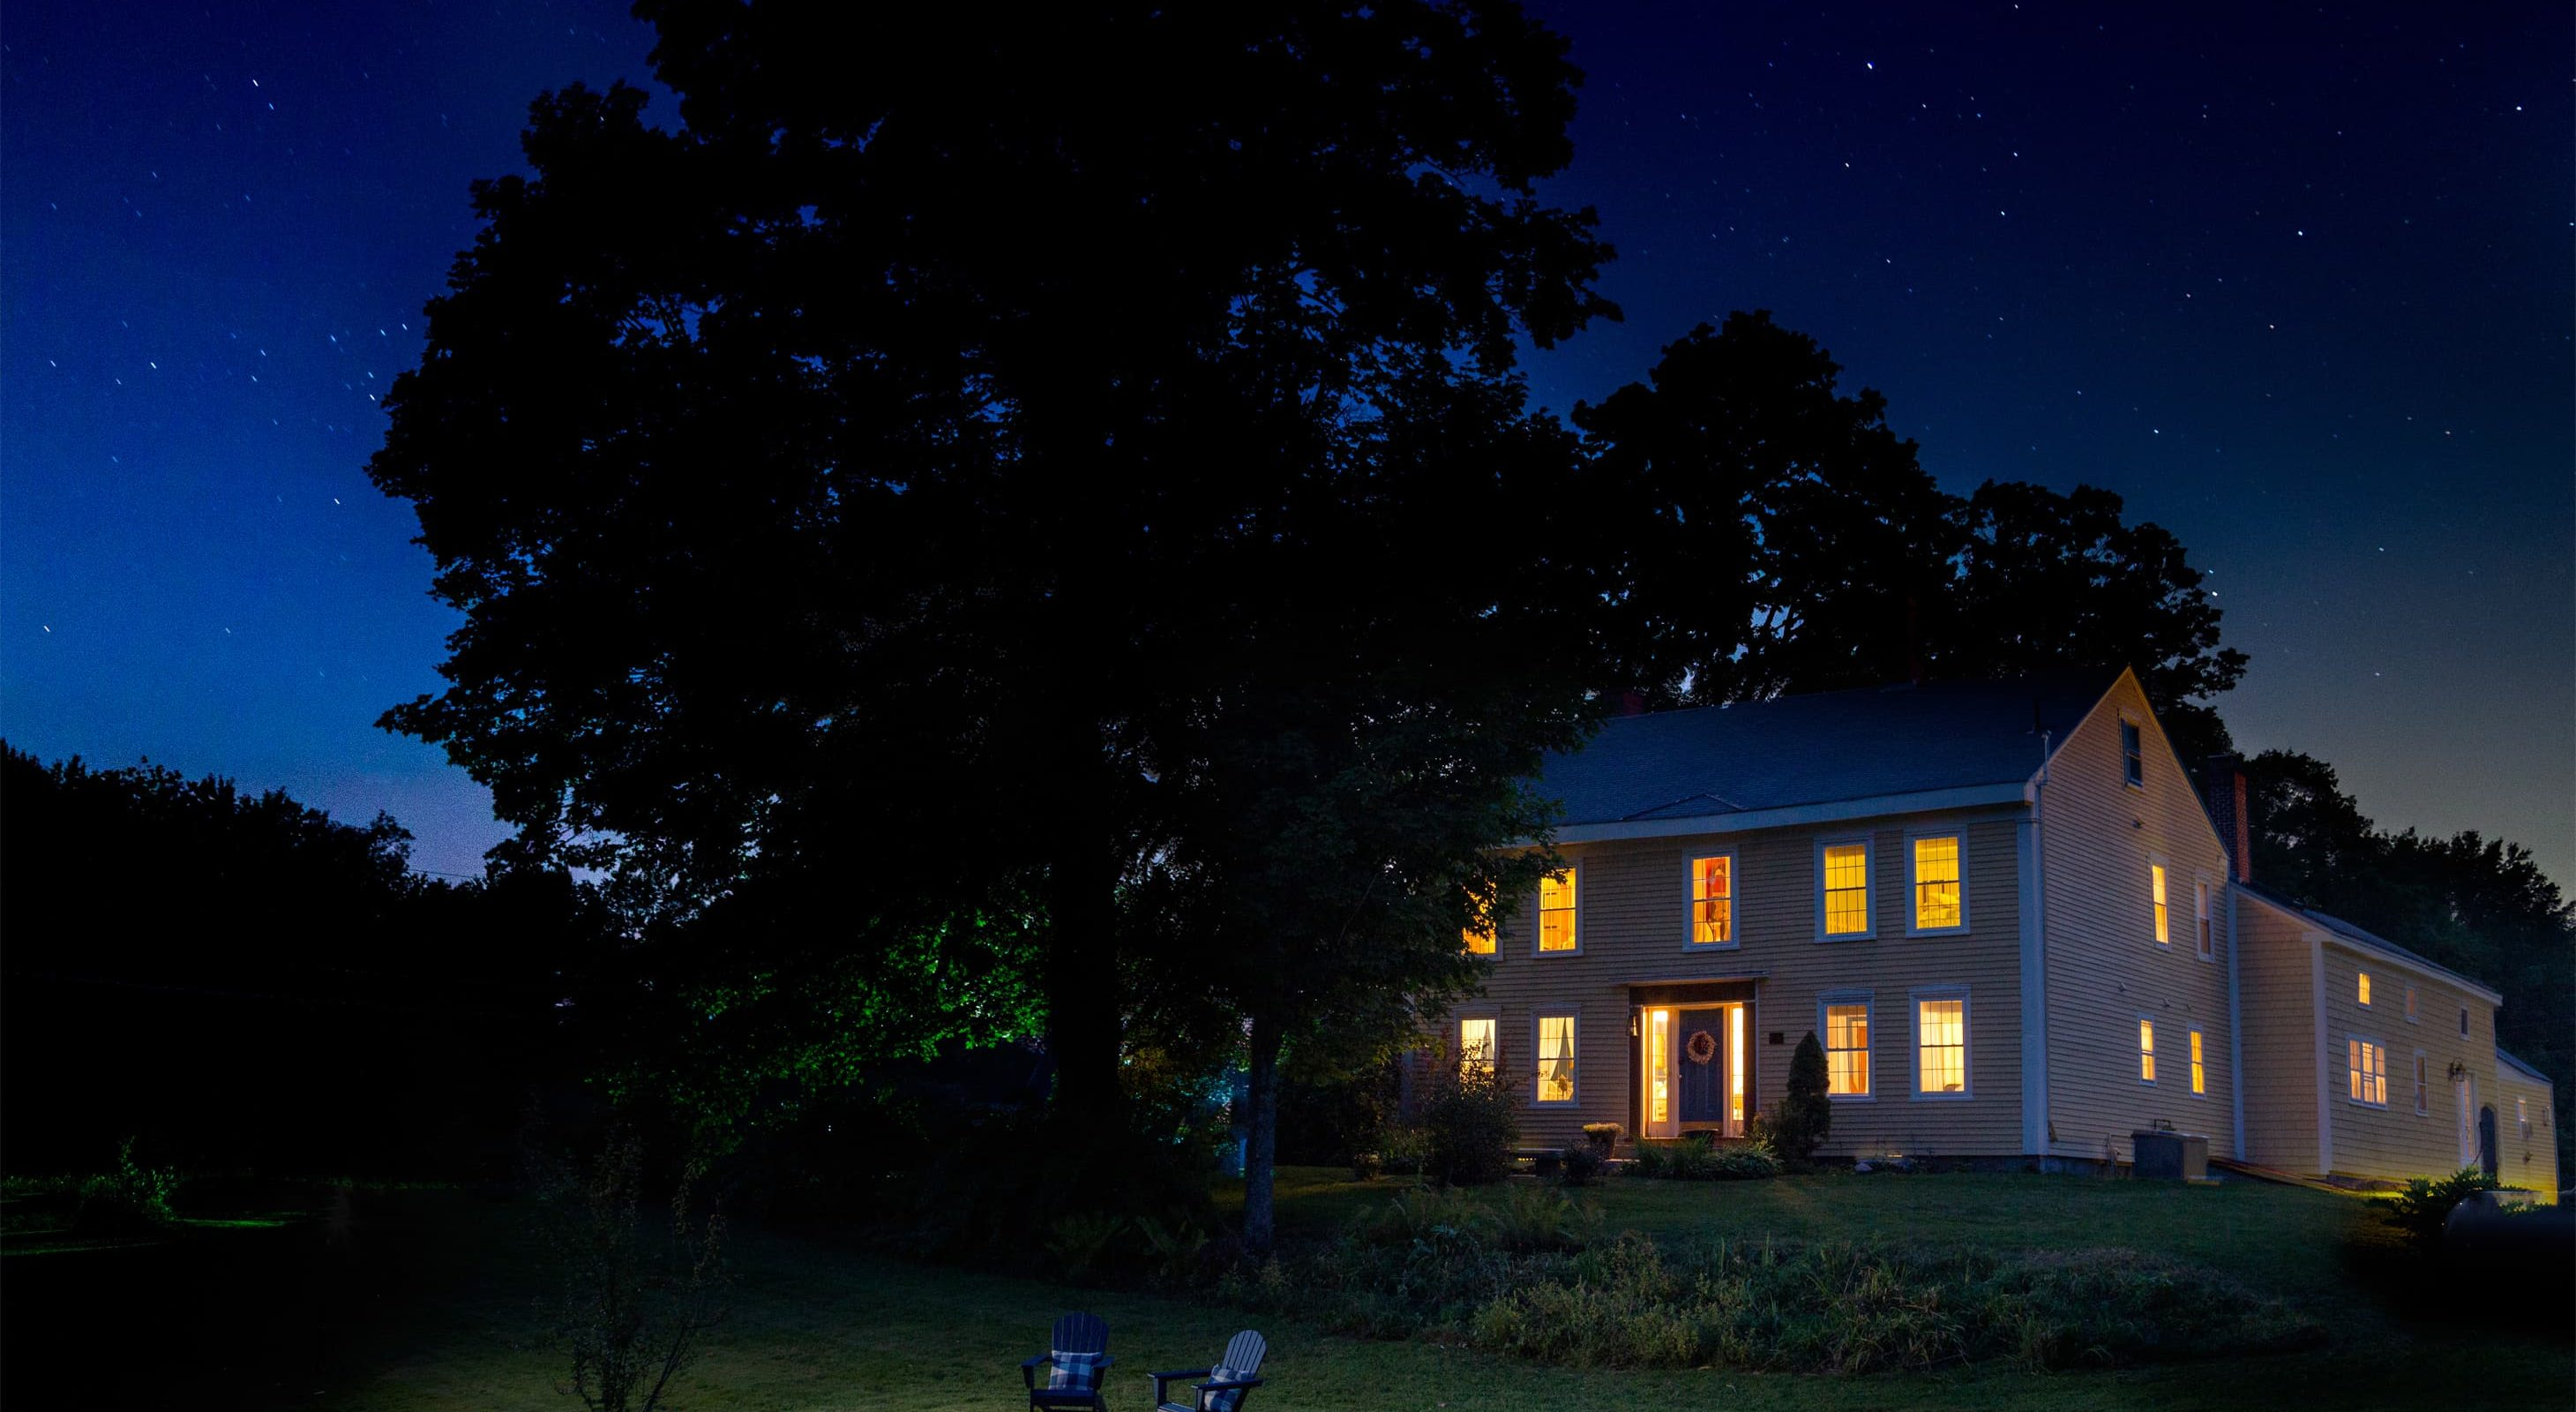 Sit under the stars at our Southern Maine bed and breakfast